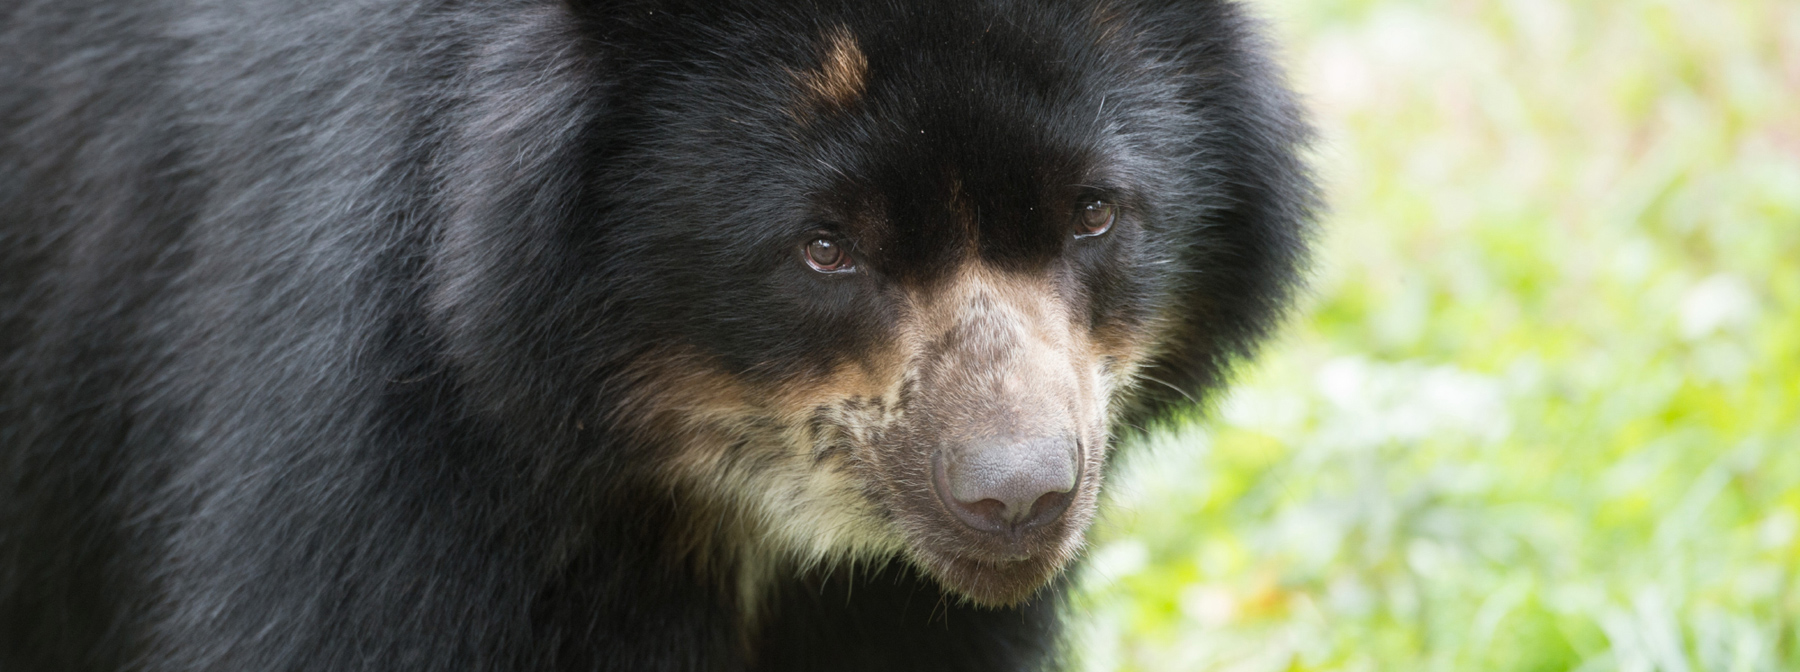 Photos: South America's adorable Andean bear